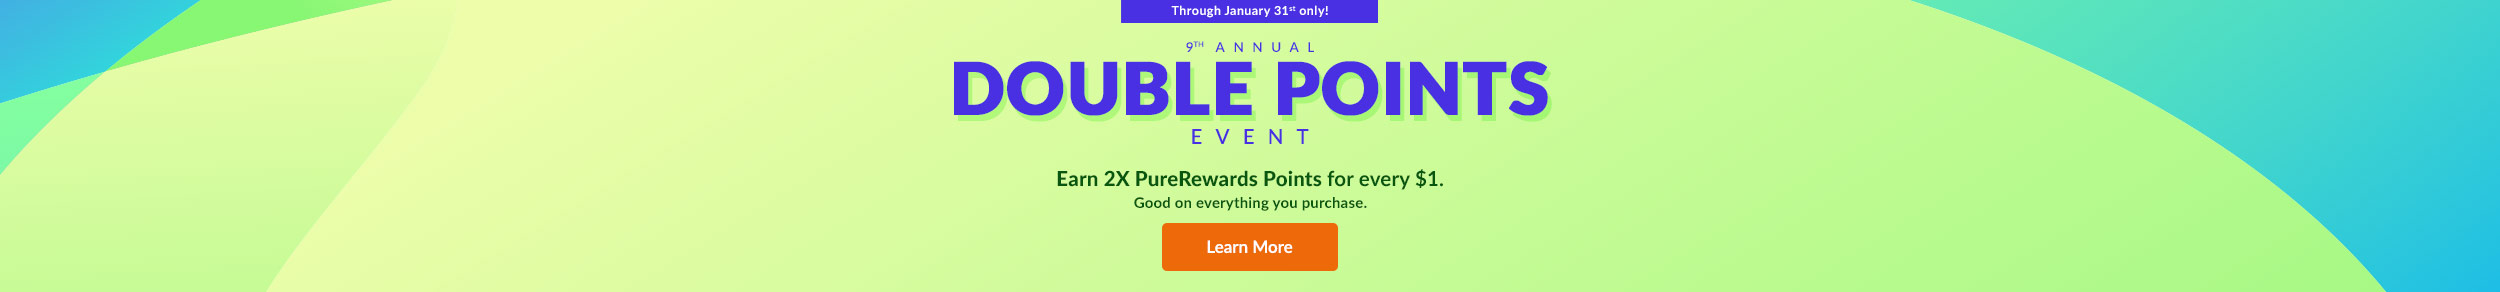 Through January 31st only! 9TH ANNUAL DOUBLE POINTS EVENT - Earn 2x PureRewards Points for every $1. Good on everything you purchase. Learn More